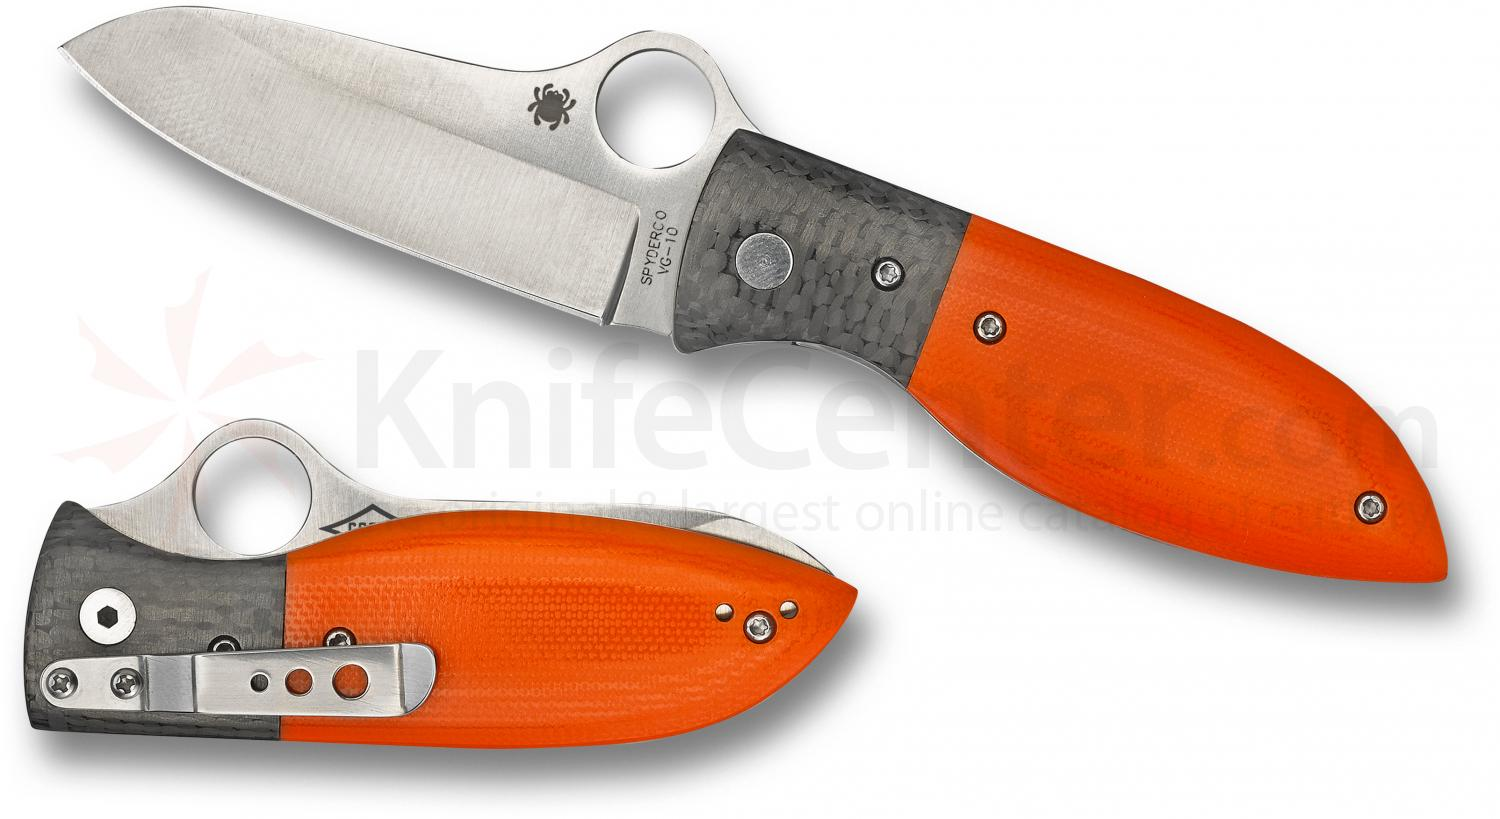 Spyderco C184GPOR Firefly Folding 2.74 inch VG10 Plain Blade, Orange G10 Handles with Carbon Fiber Bolsters